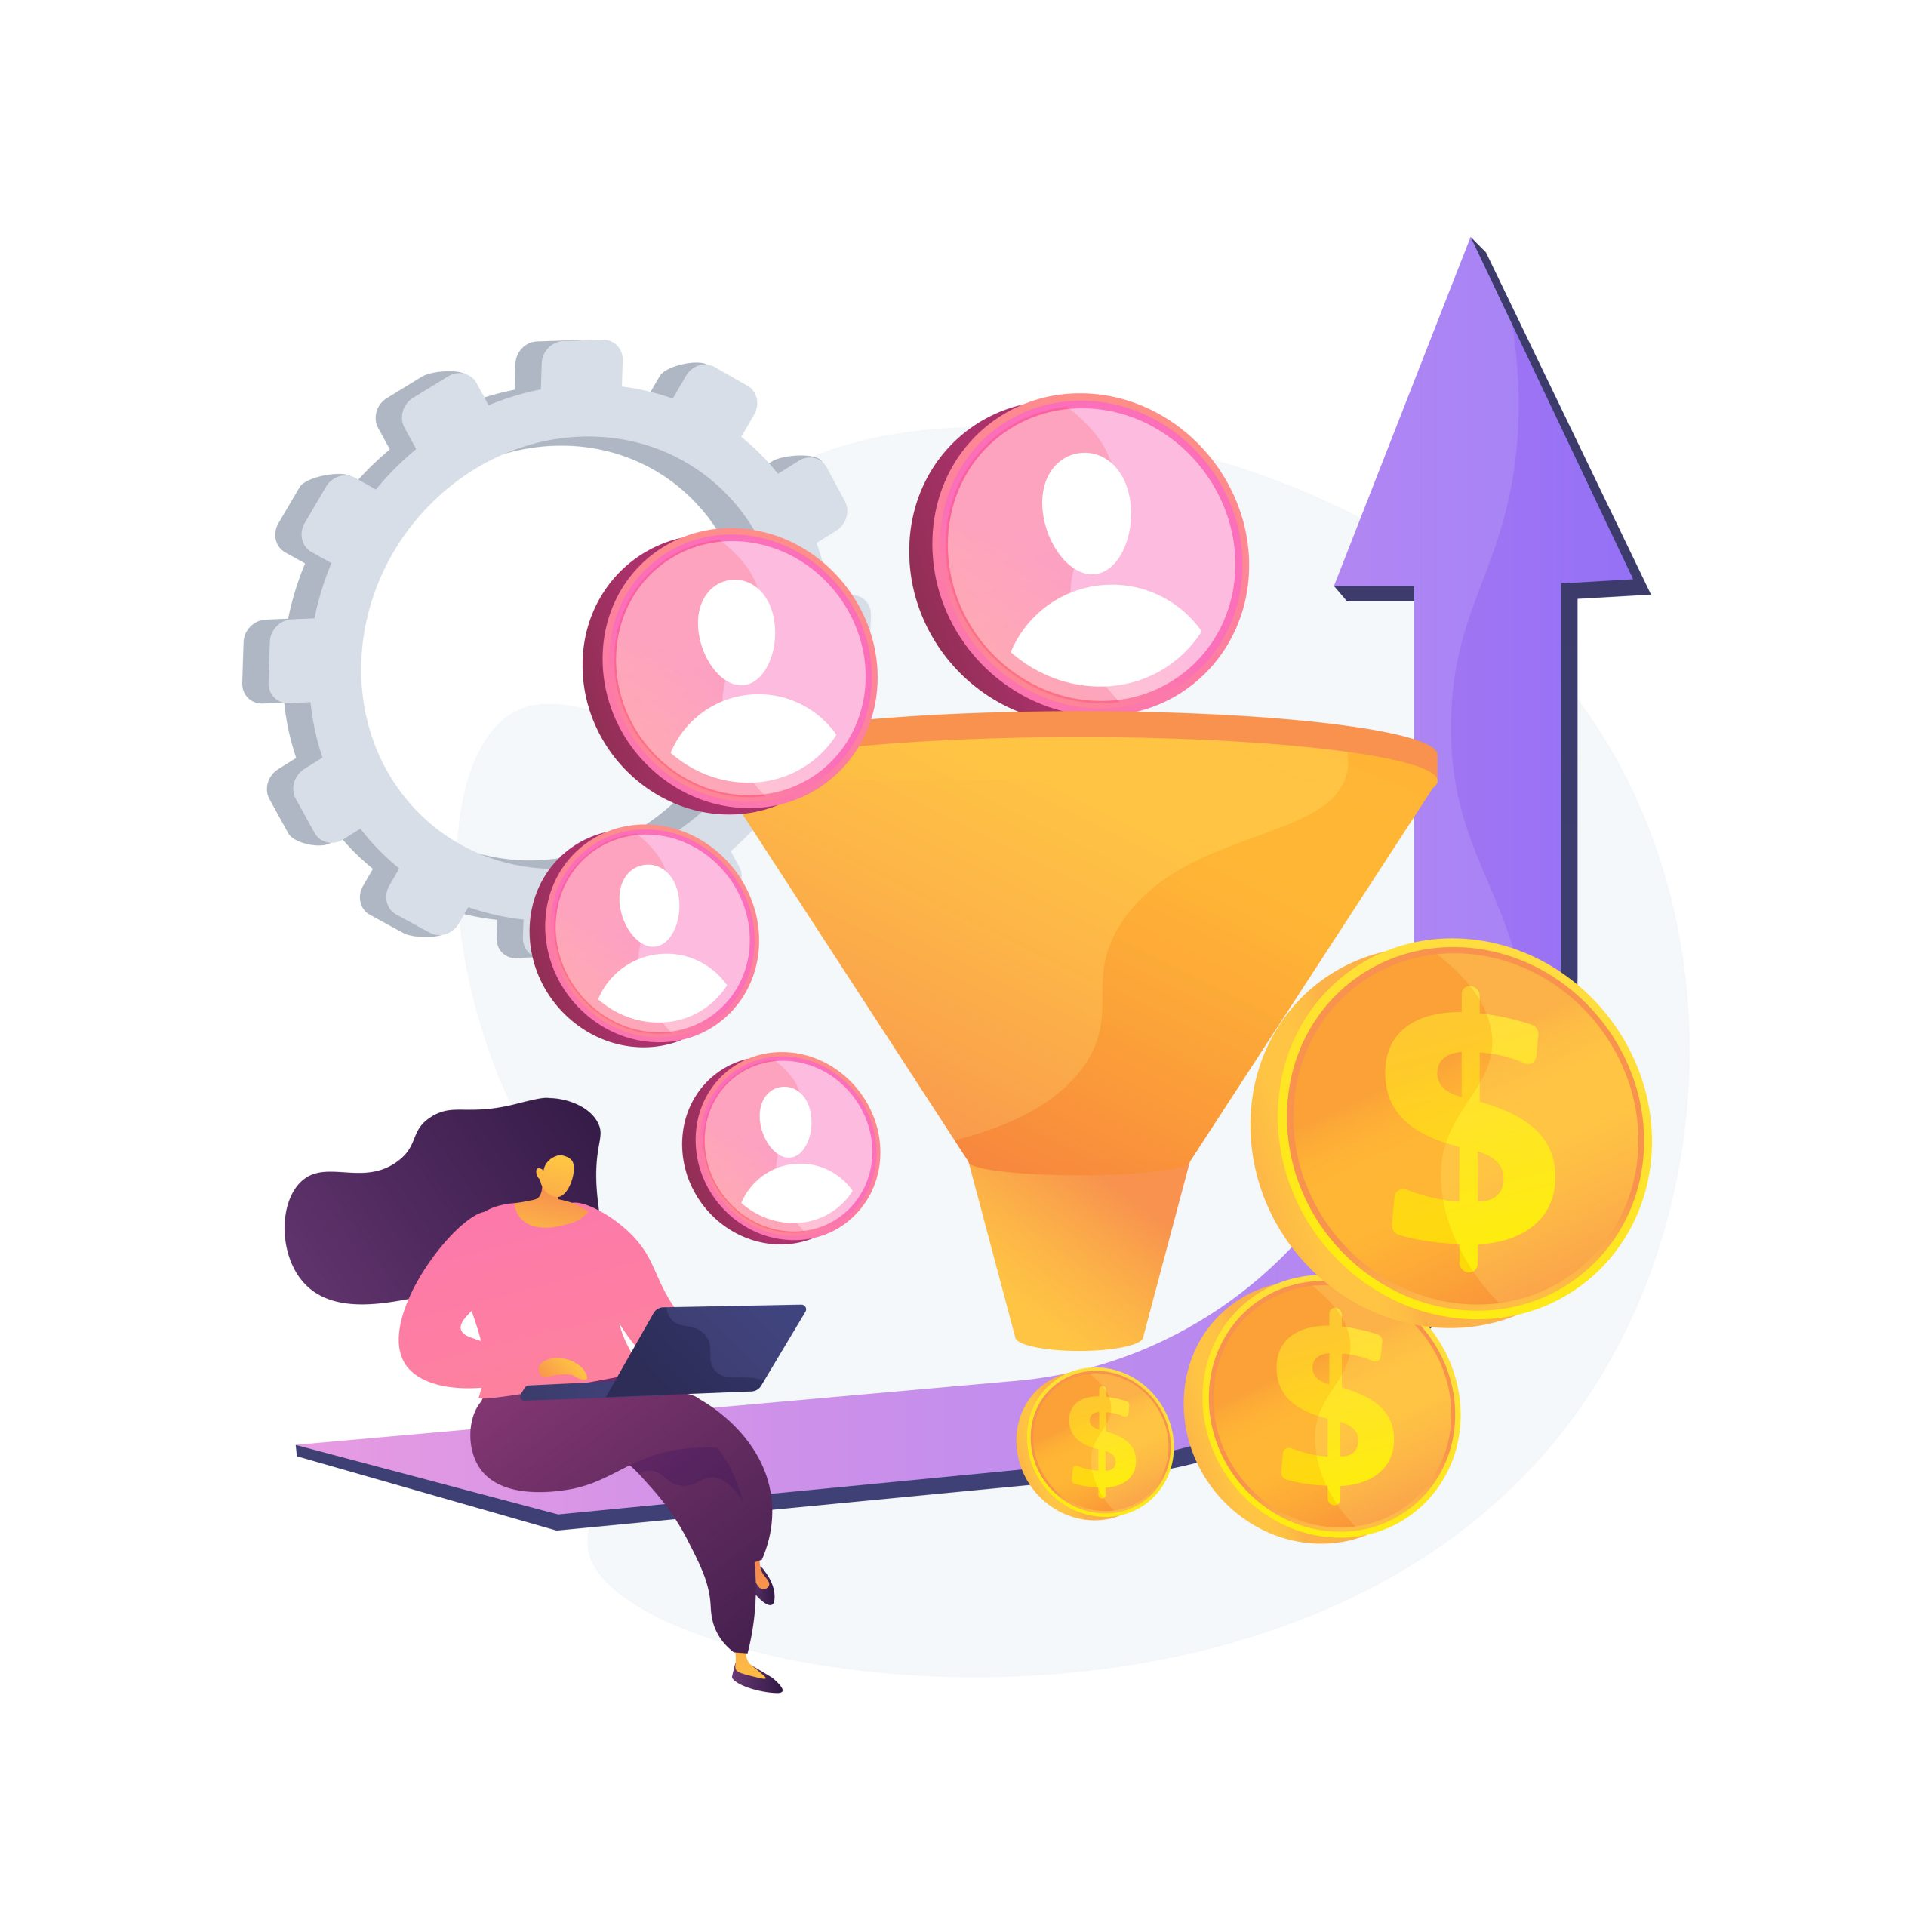 Conversion rate optimization abstract concept vector illustration.